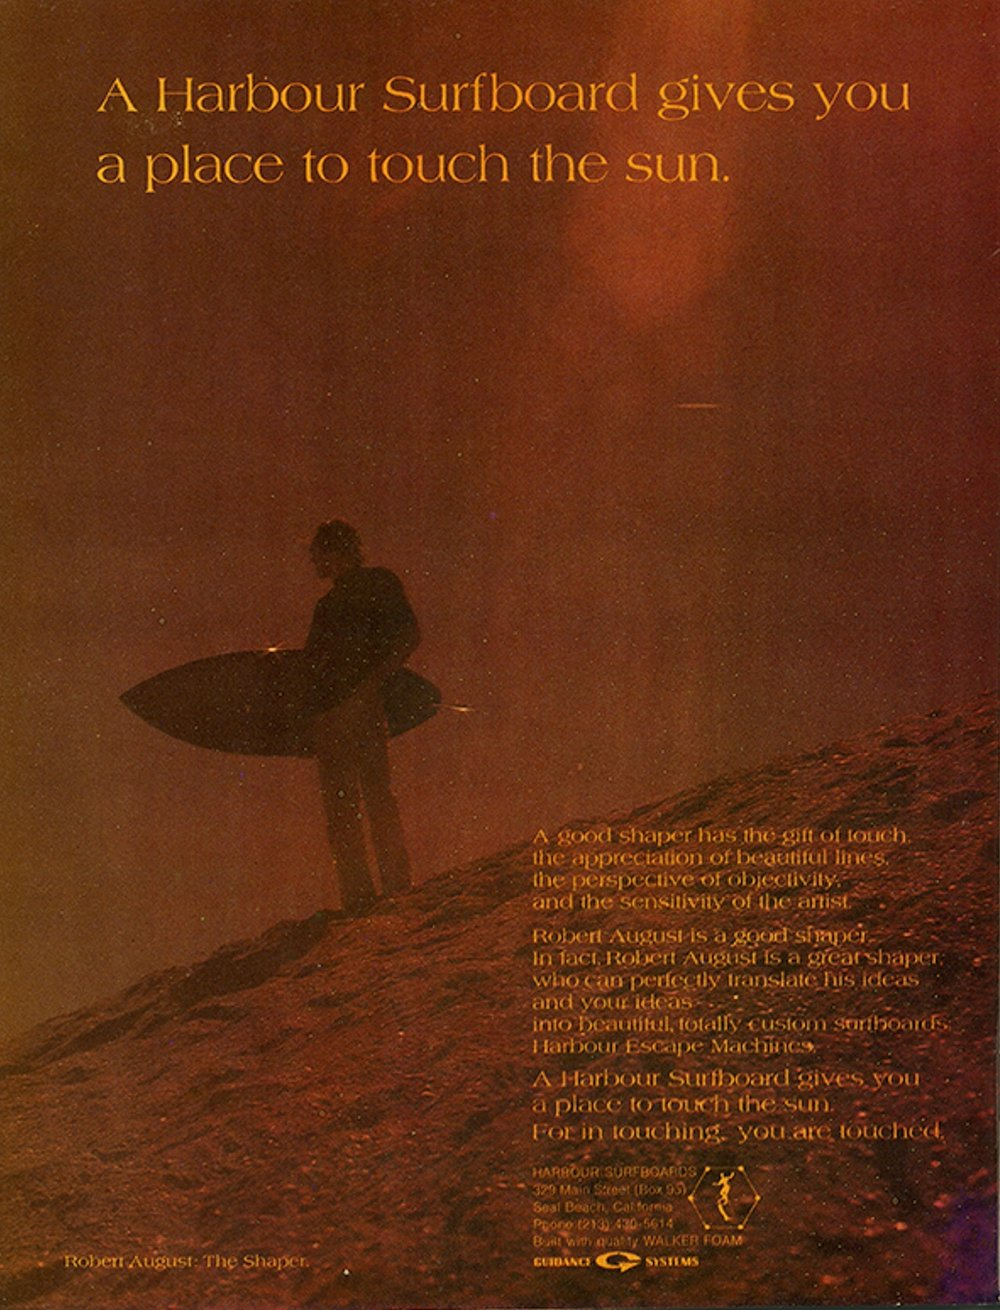 SURFER MAG 1970 MAY VOL11